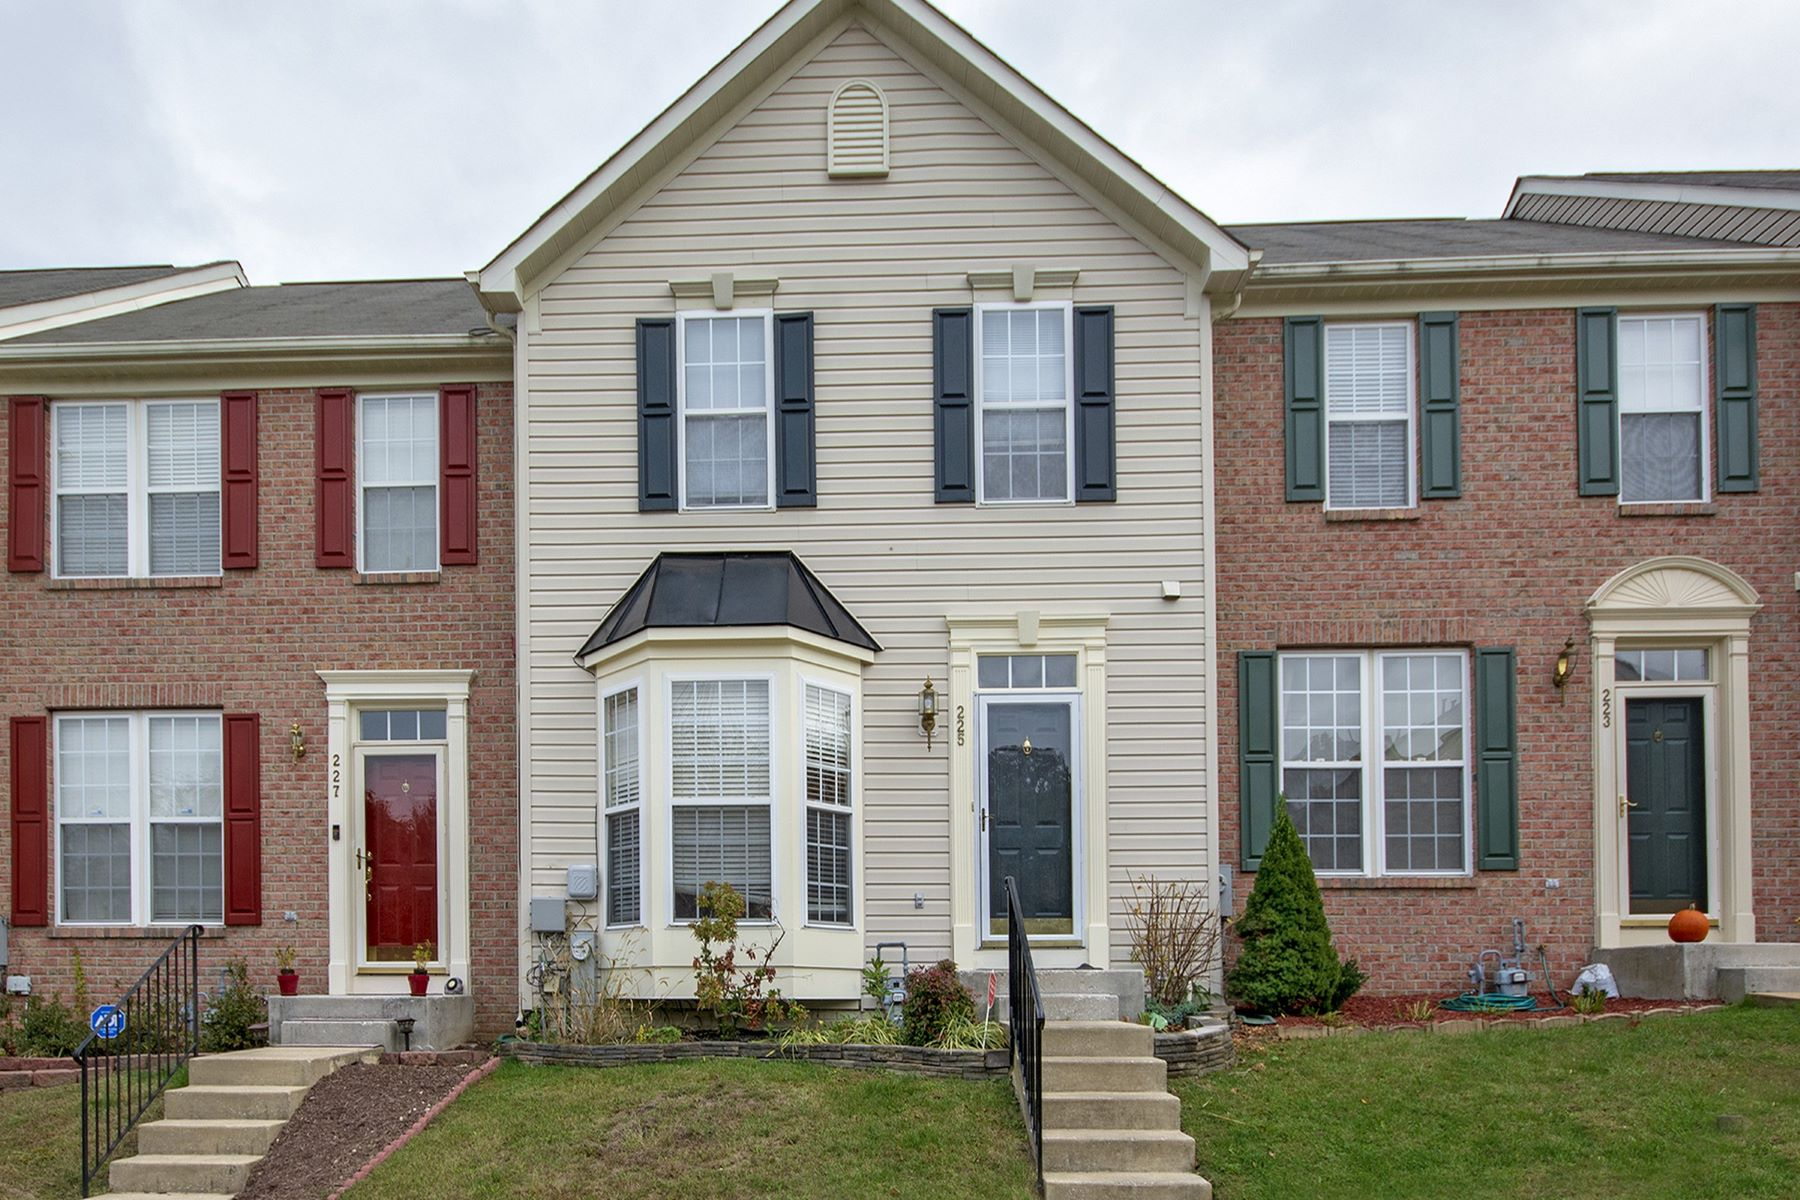 Single Family Homes for Active at Bright and Airy 225 Isinglass Road Owings Mills, Maryland 21117 United States